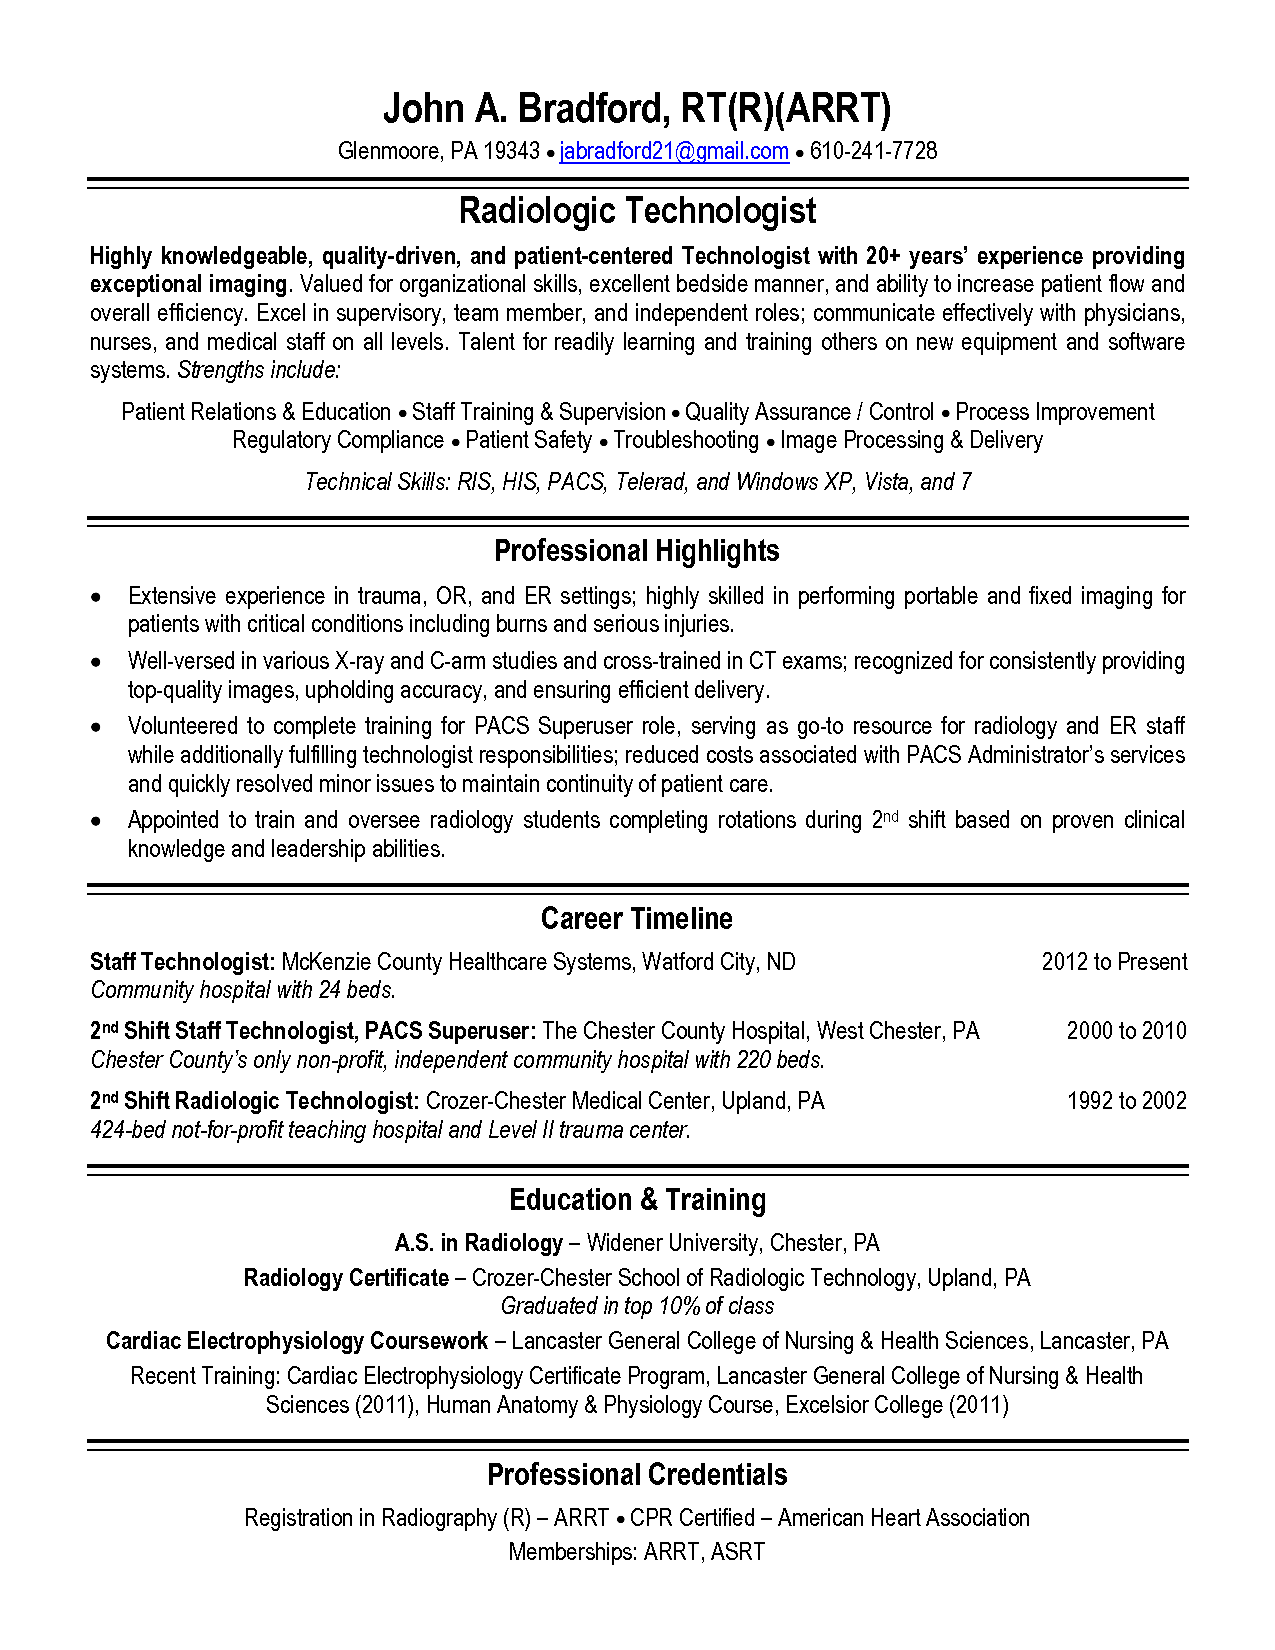 X Ray Technologist Resume Examples Resume Templates Resume Skills Professional Resume Examples Resume Objective Examples